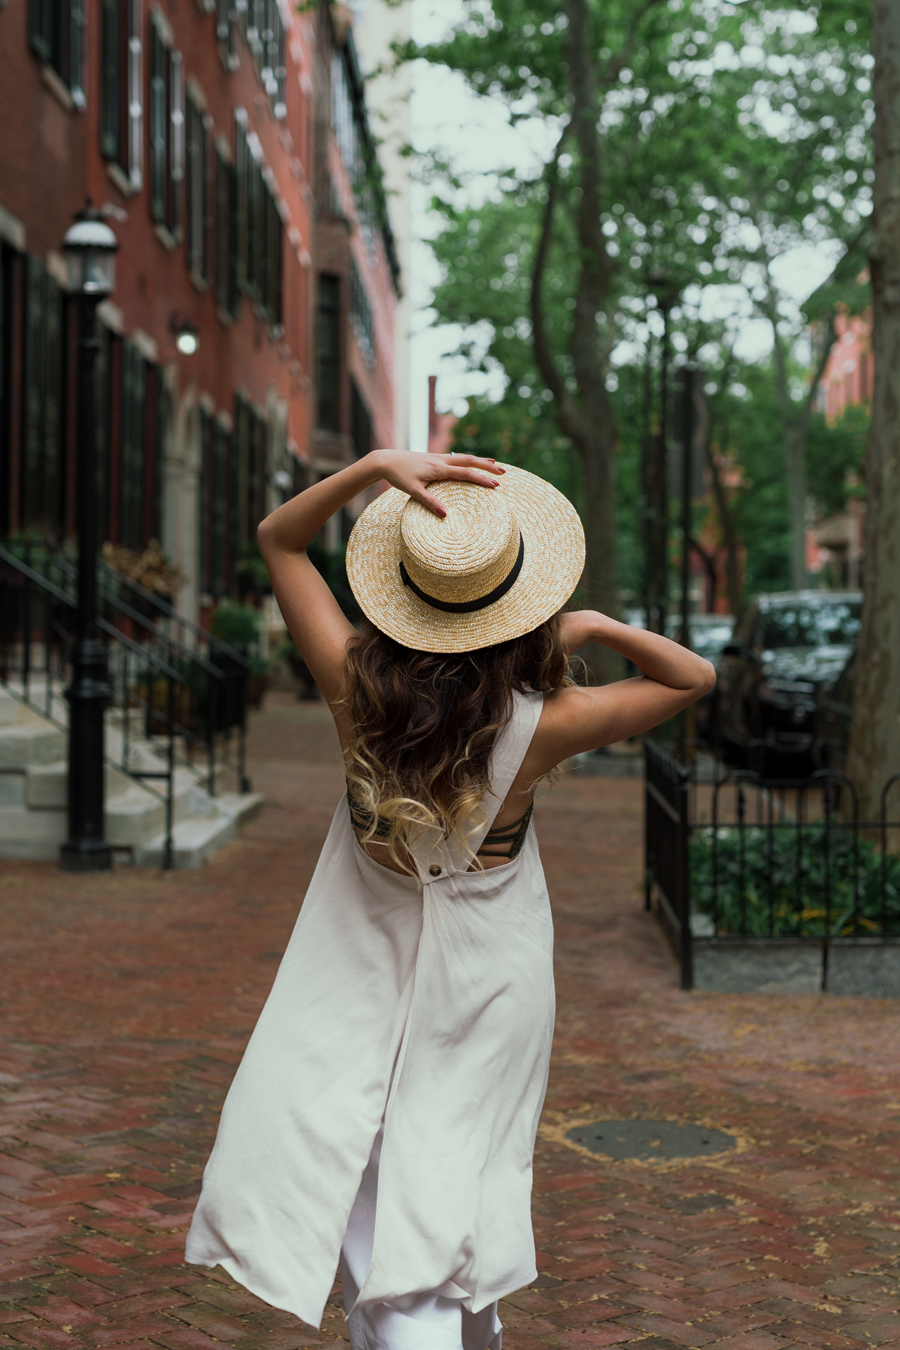 ADD TEXTURES - Depending on the seasons but spring & summer, add a straw hat, wicker bag, anything nature-textured! Check out my last blogpost about springy bags, they go SO PERFECT with all white looks! (Click HERE to check it out!)